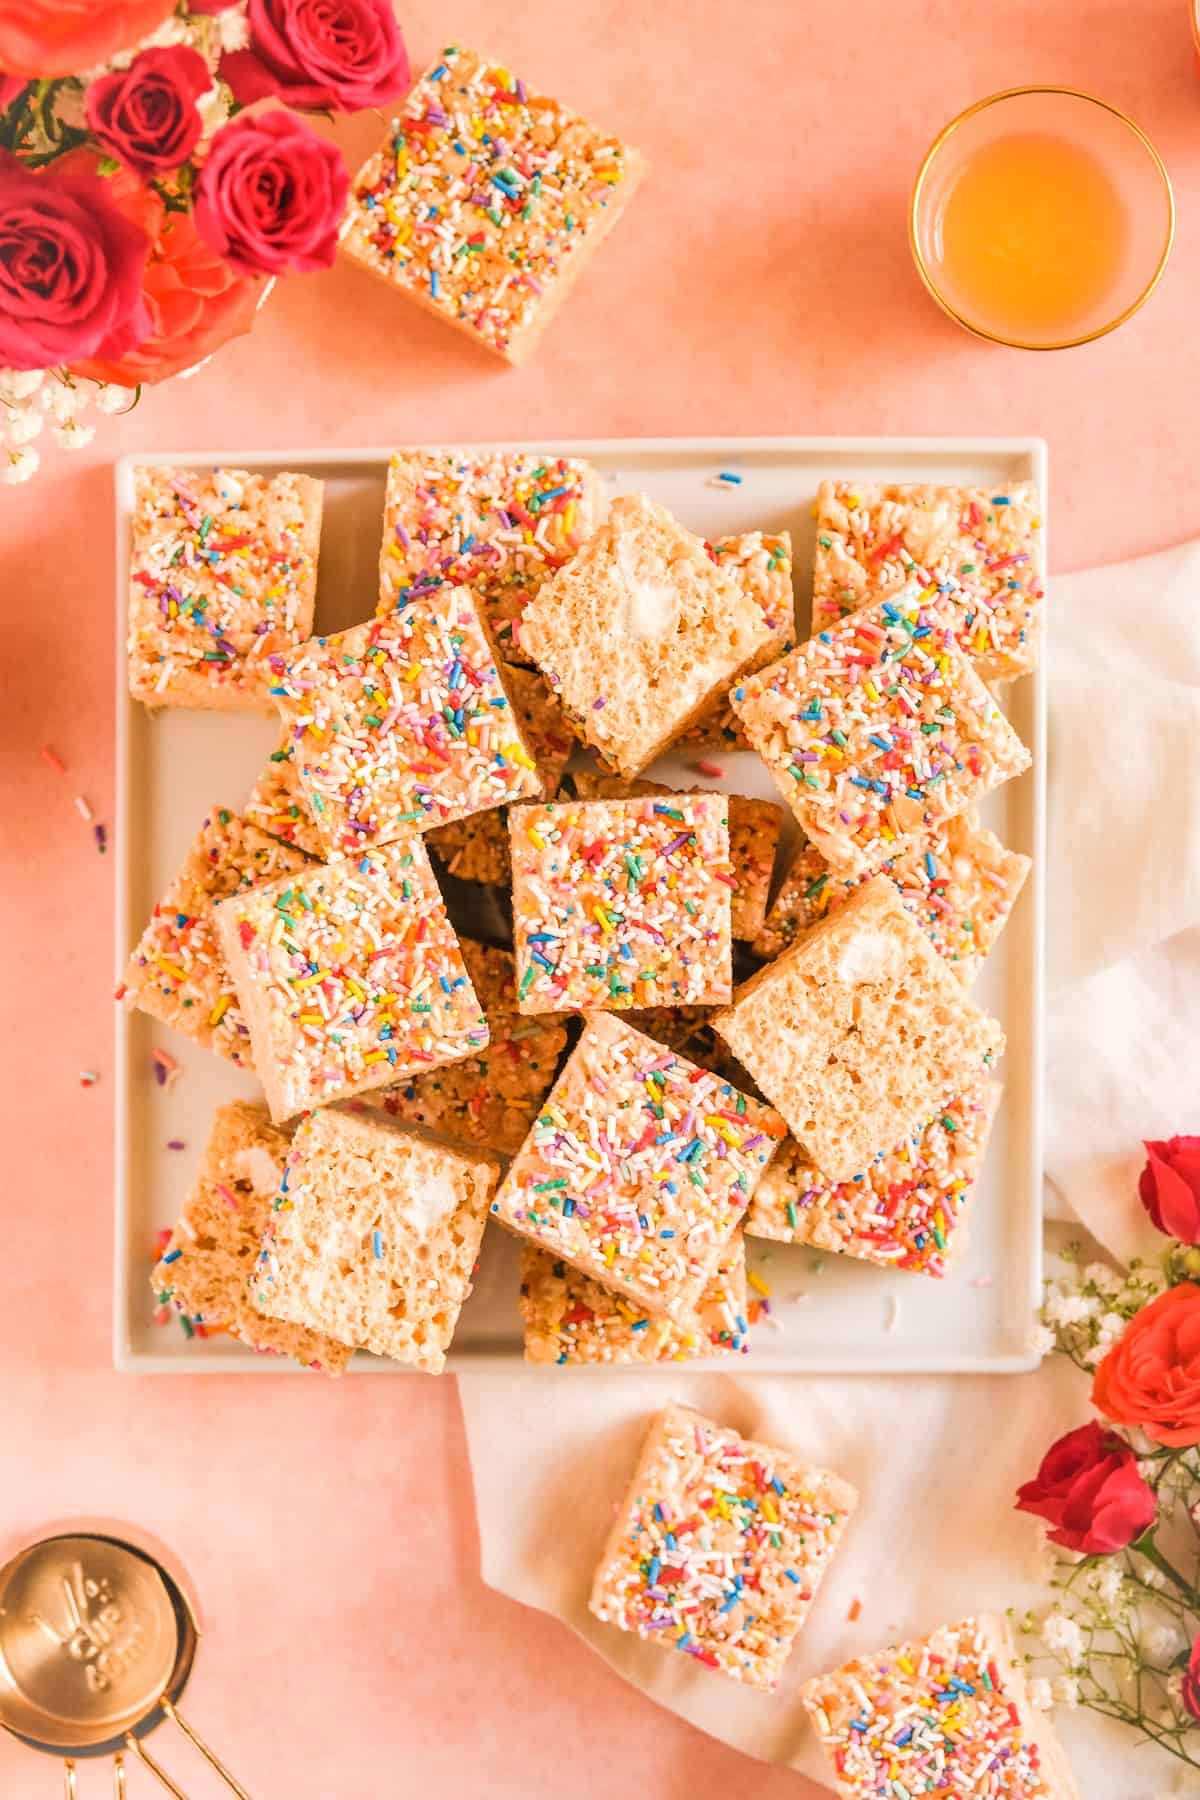 Brown Butter Rice Krispie Treats stacked on a plate with a glass of orange juice, measuring bags, and flowers on the table